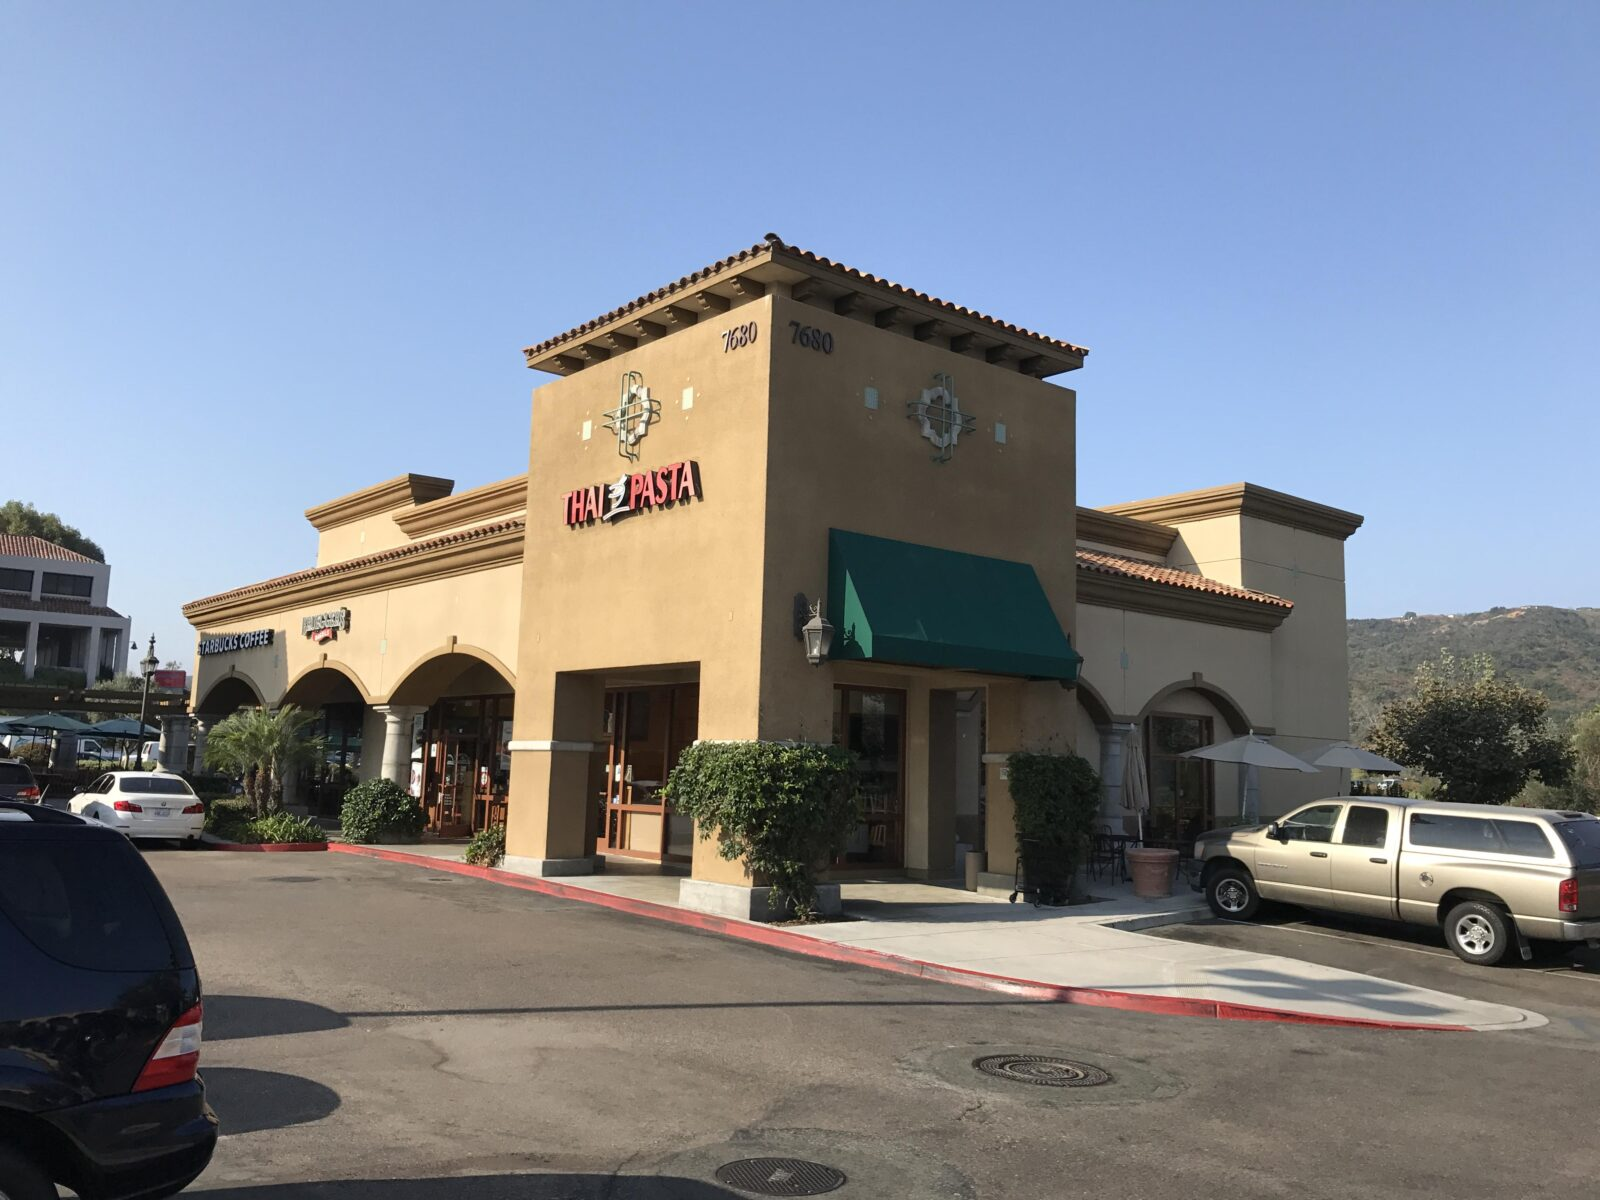 Spectacular South Carlsbad (La Costa) End Cap Location – Currently Thai Pasta